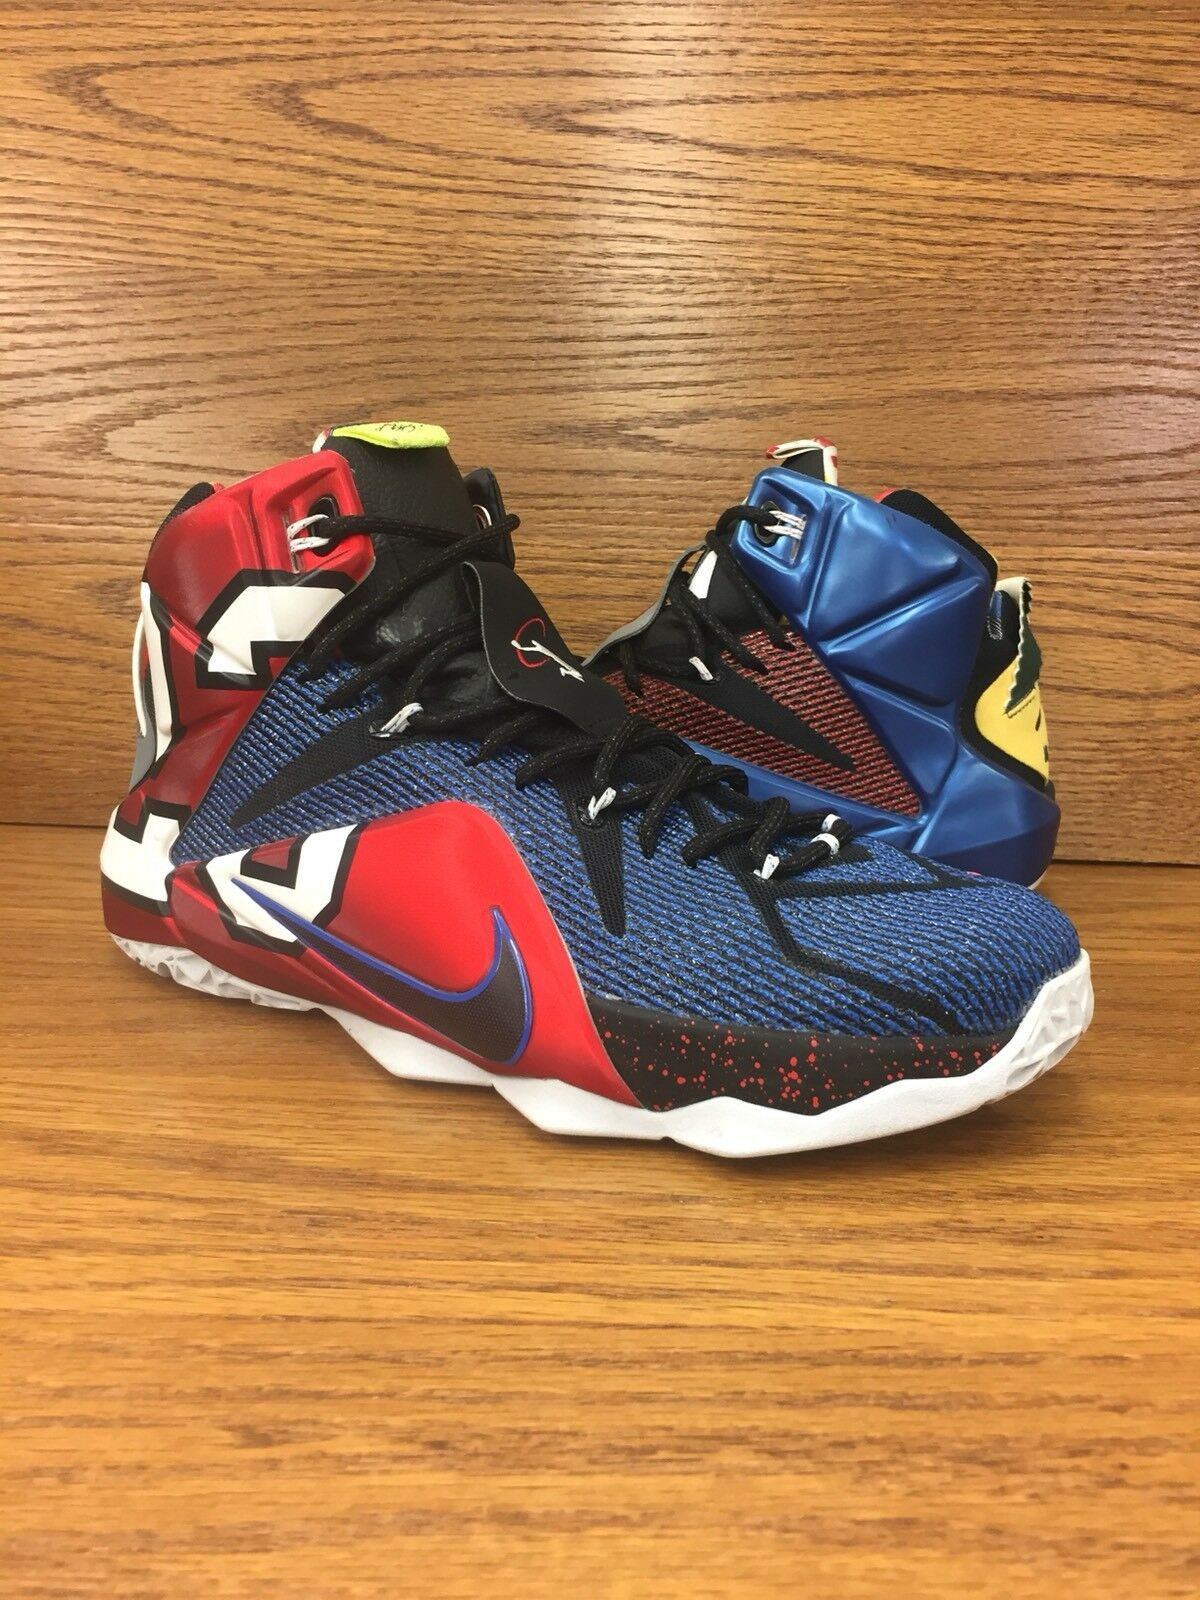 Nike Lebron 12 SE What The Multicolor Uomo Basketball Shoes Size 10 VNDS